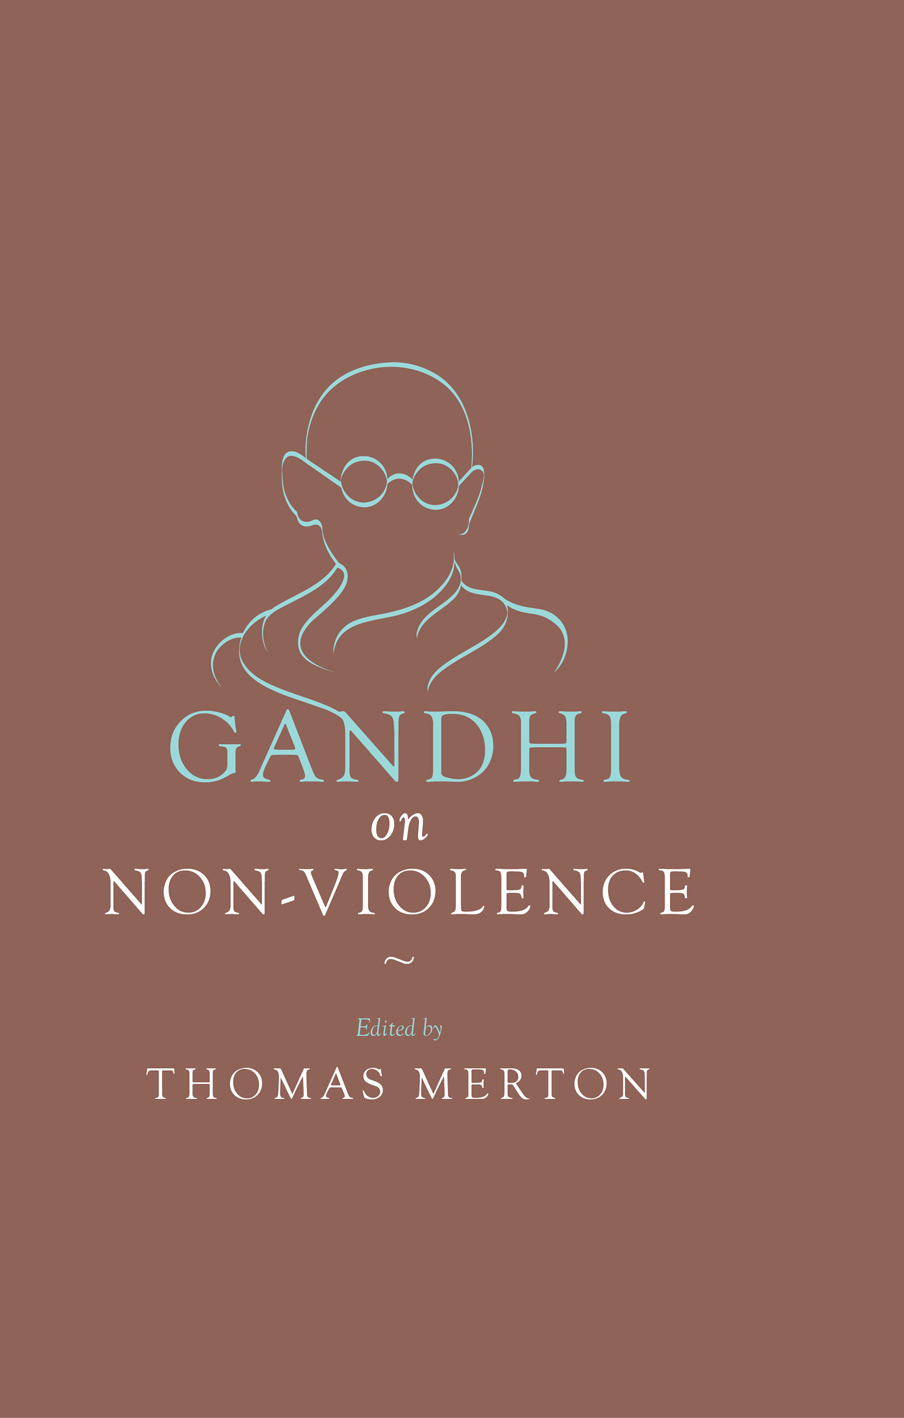 an essay on non-violence Essay on non violence - 28 images - essay on non violence dissertation essay writings from hq specialists, domestic violence the following essay will concentrate on.